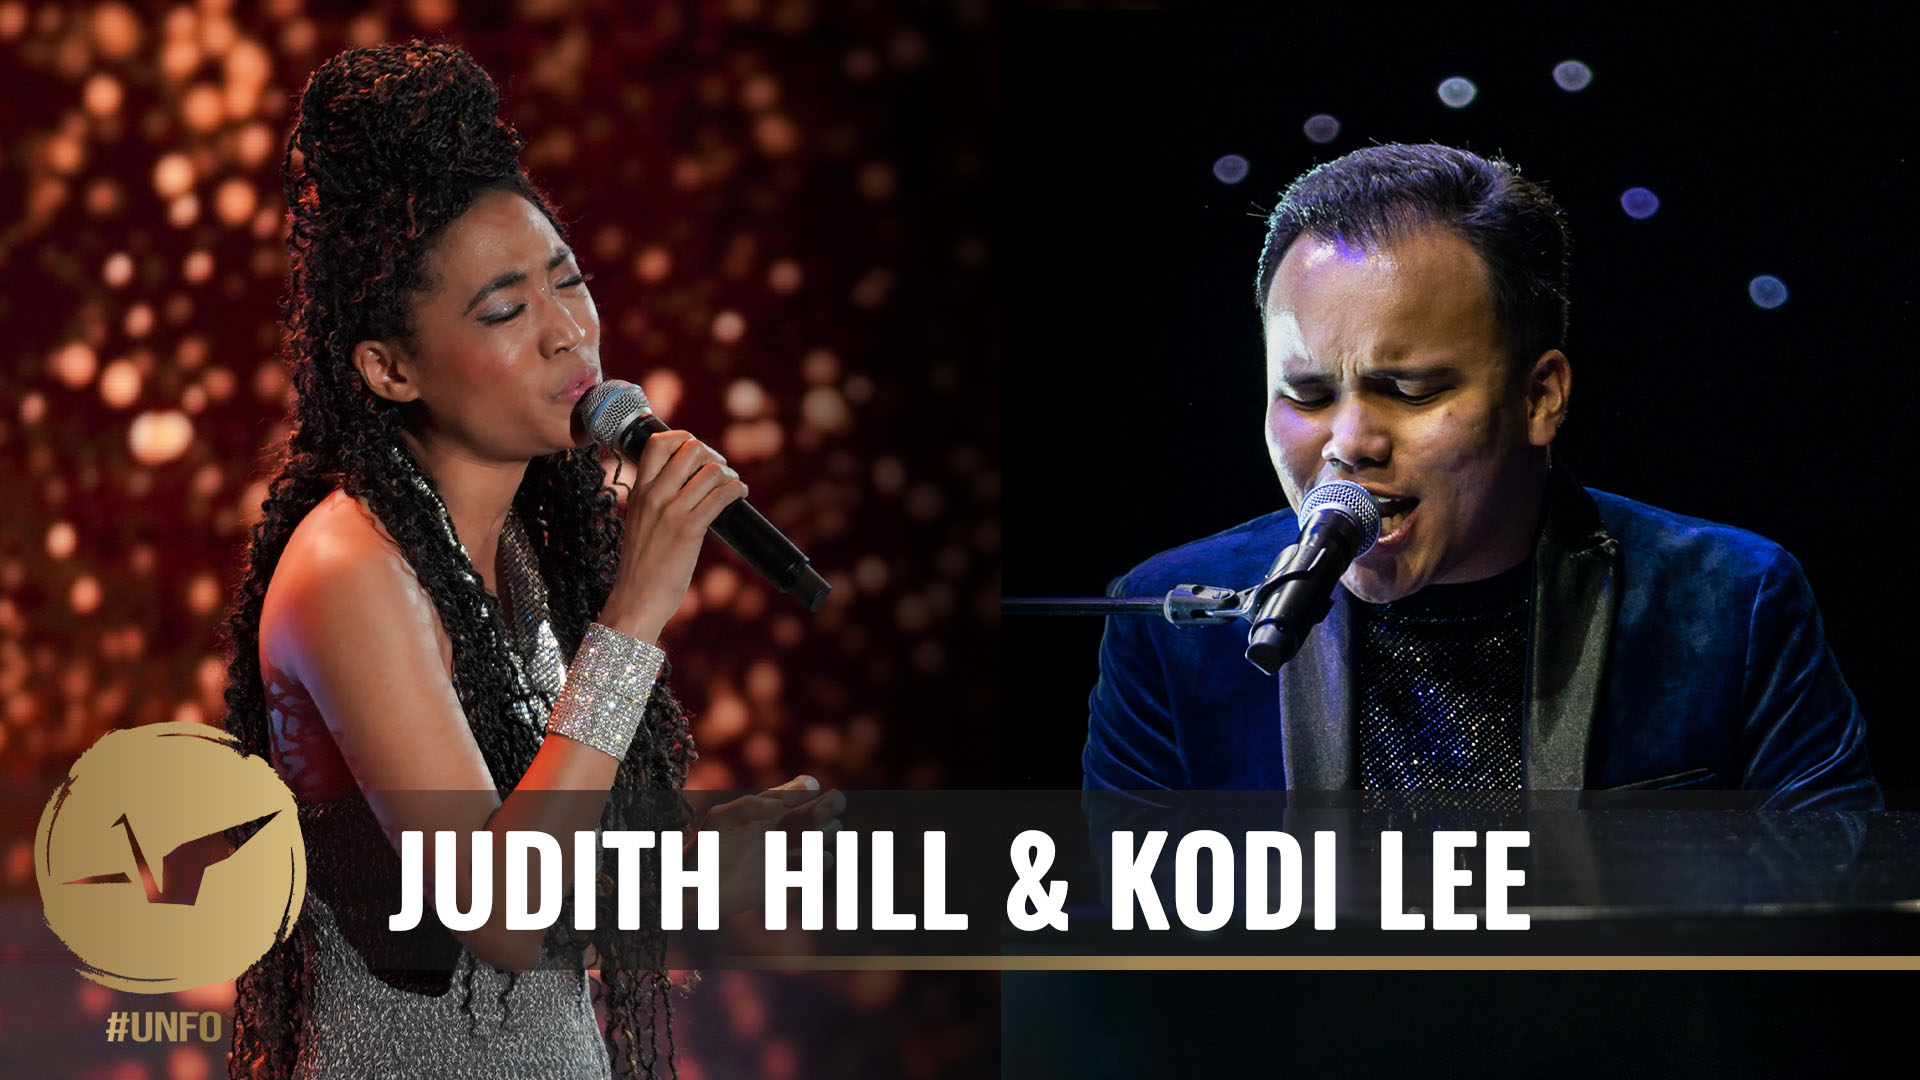 KODI LEE & JUDITH HILL